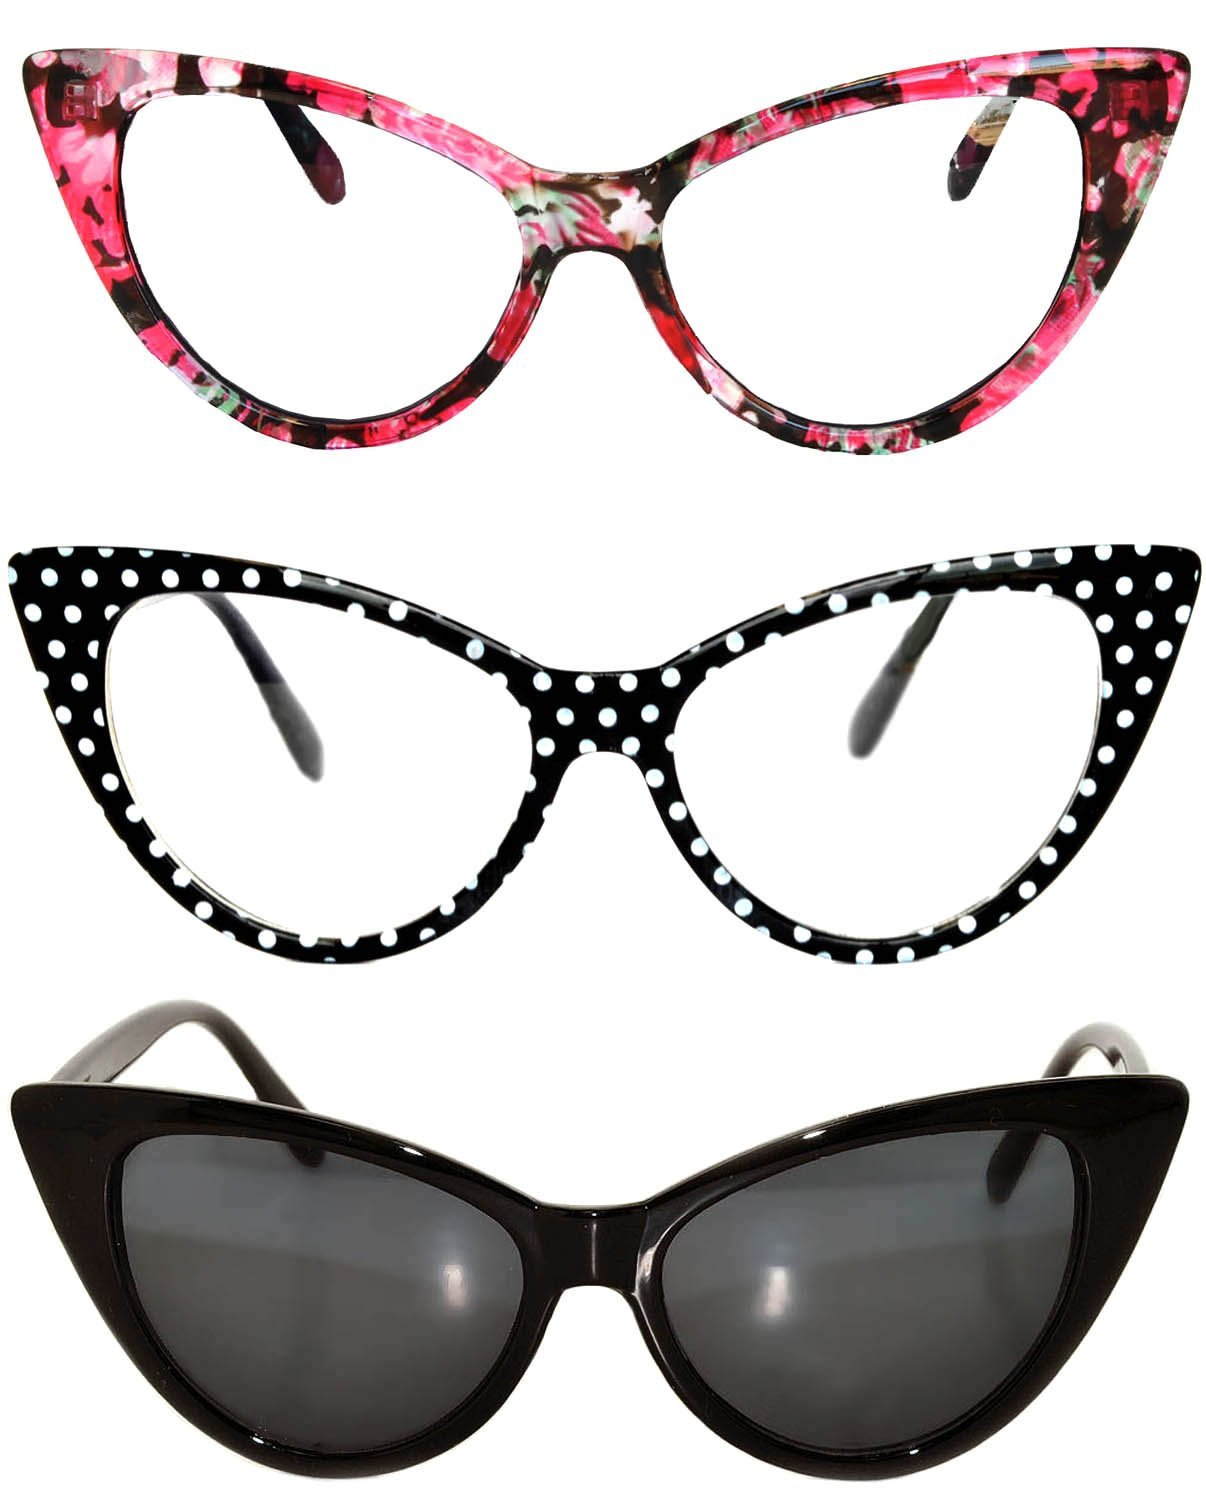 3 pairs Cat Eye Sunglasses Plastic Frame Black Polka Dots Floral frames by OWL (Image #1)